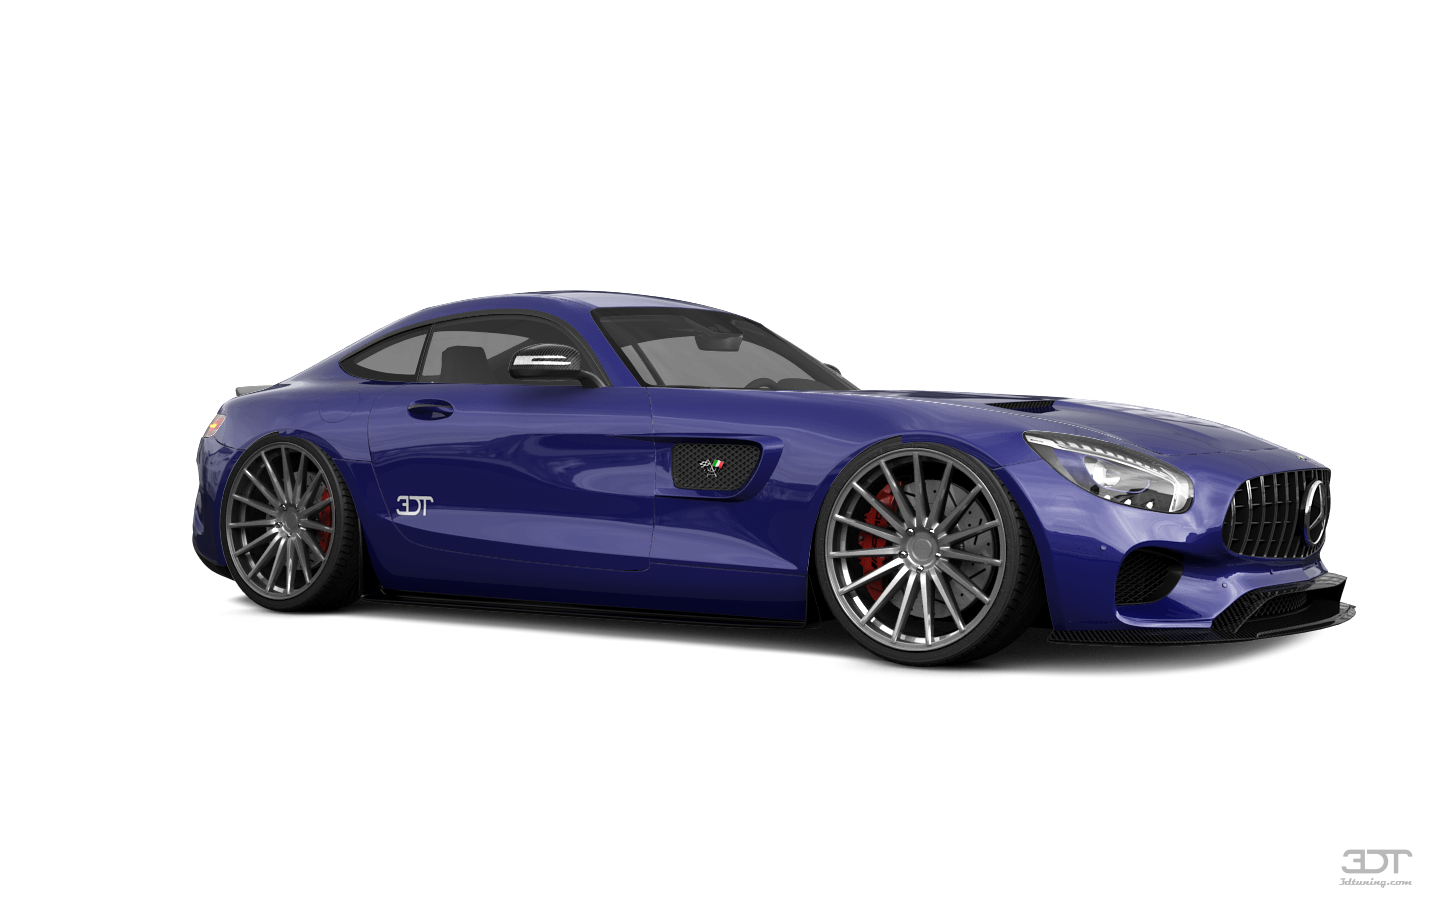 Mercedes AMG GT 2 door fastback coupe 2016 tuning